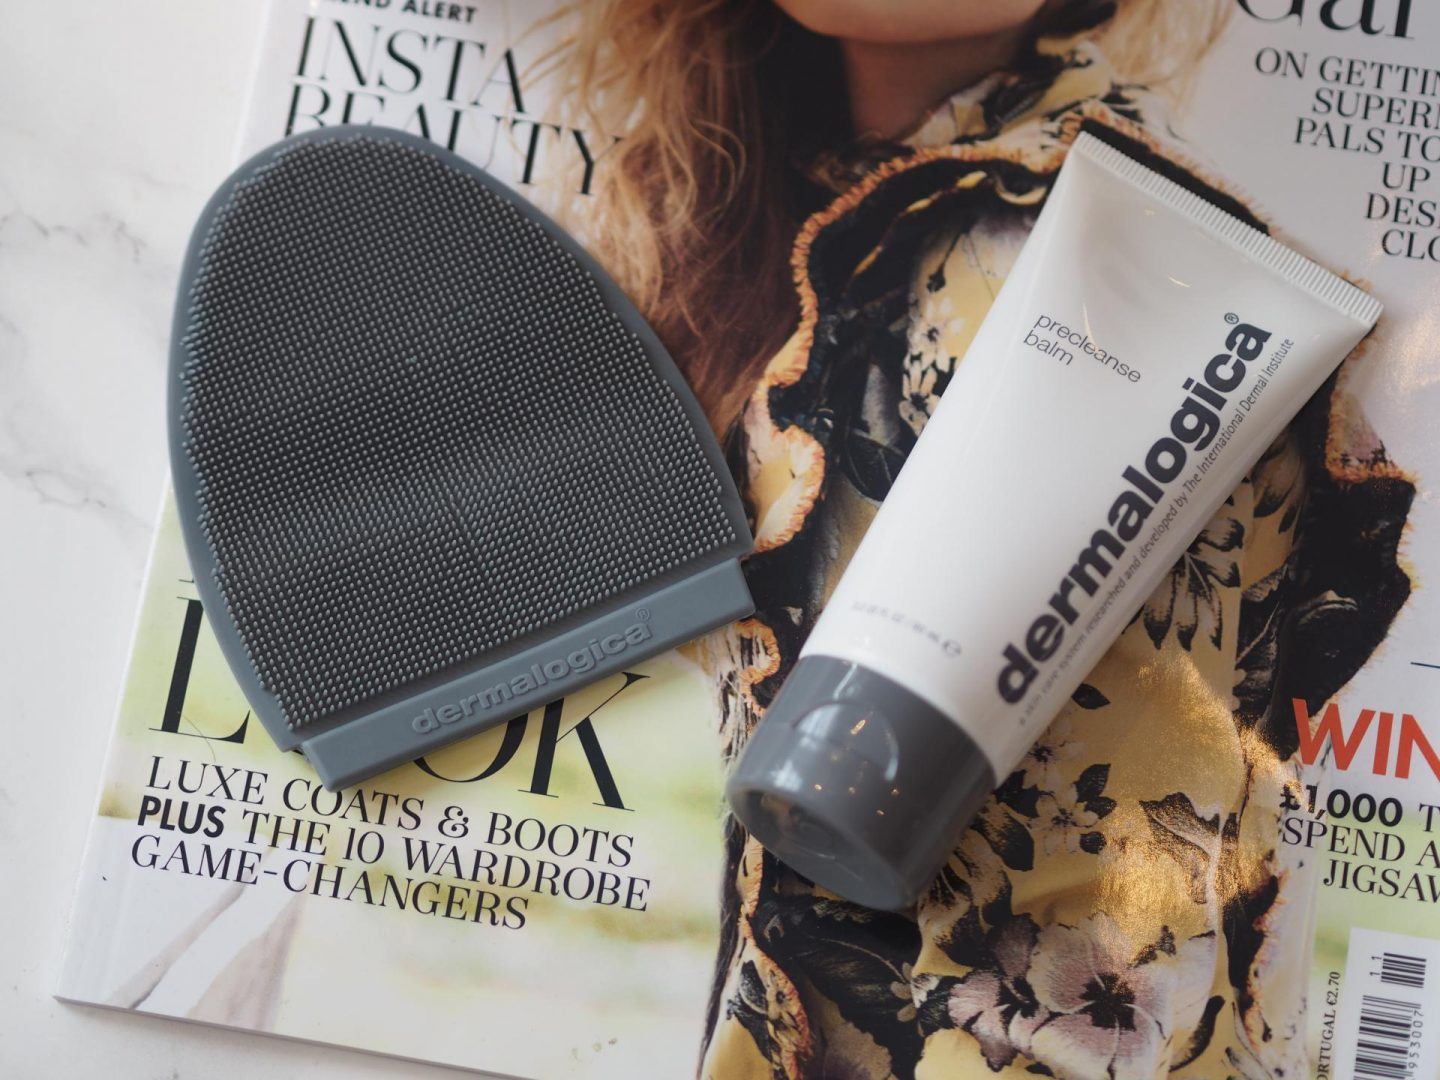 October Lookfantastic Beauty Haul - Product: Dermalogica Pre Cleanse Balm With Cleansing Mitt